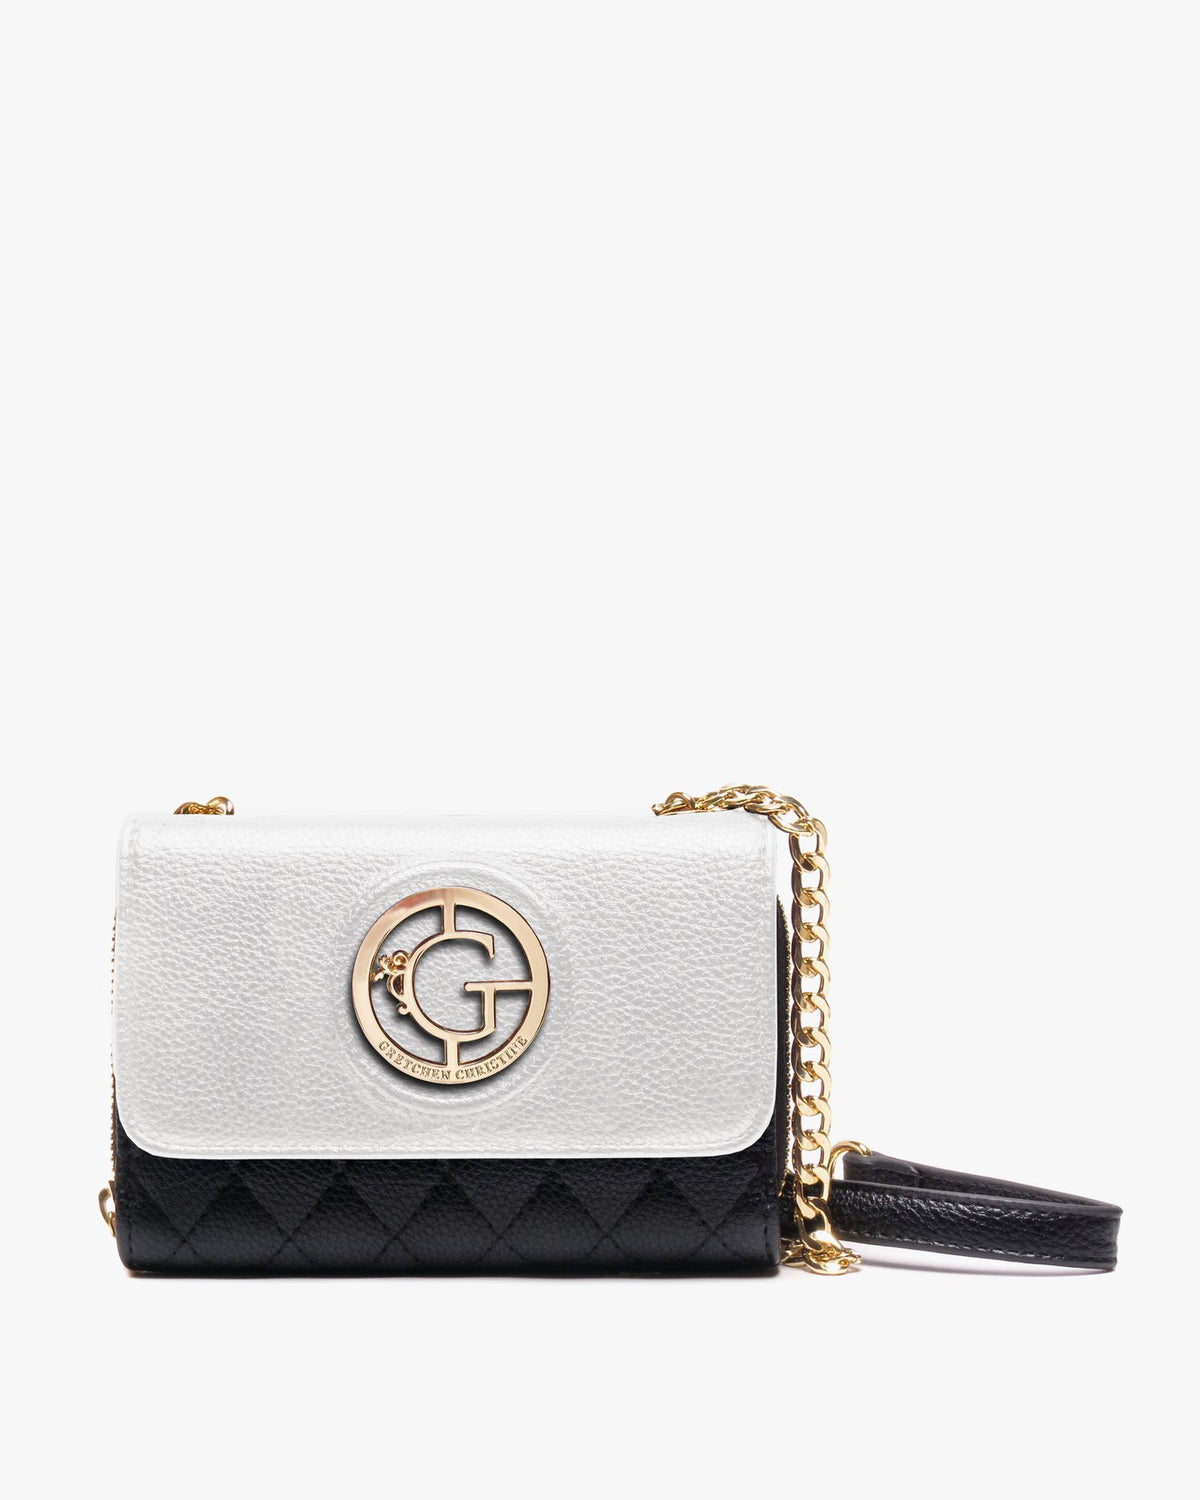 Kelsey - Vegan Leather Convertible Crossbody Clutch | White